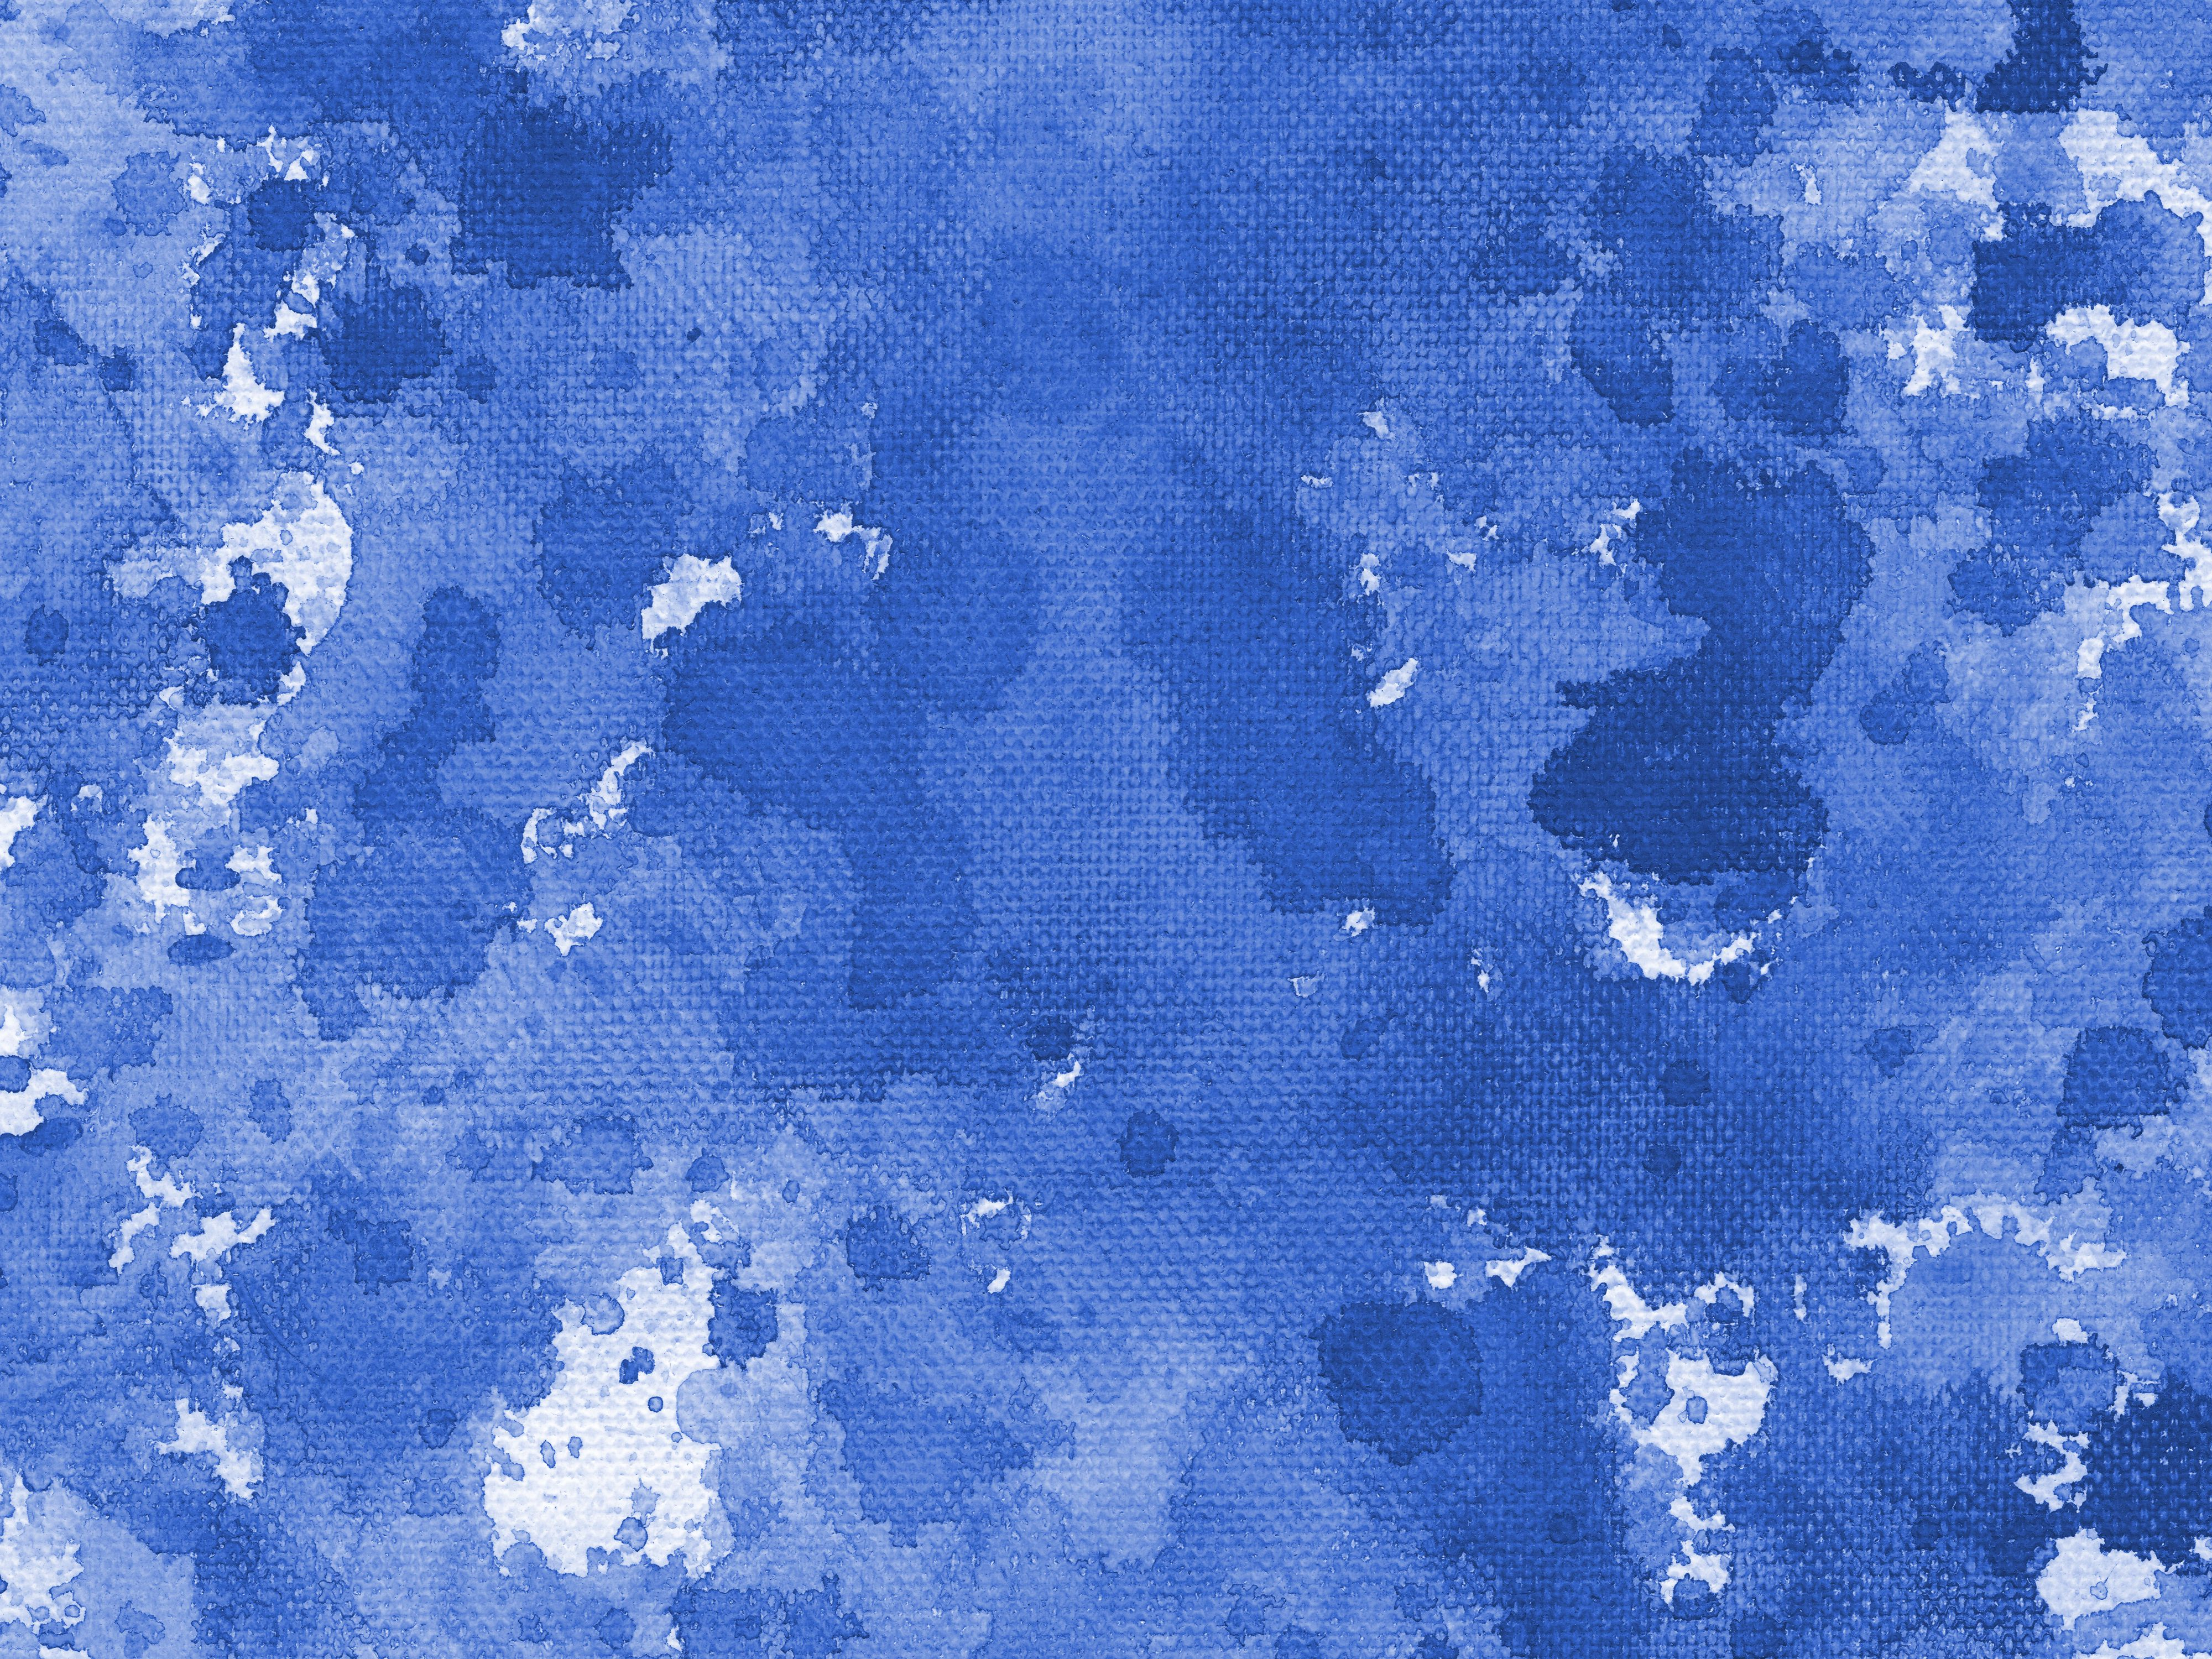 9 Blue Watercolor Splash On Canvas Background (JPG ...